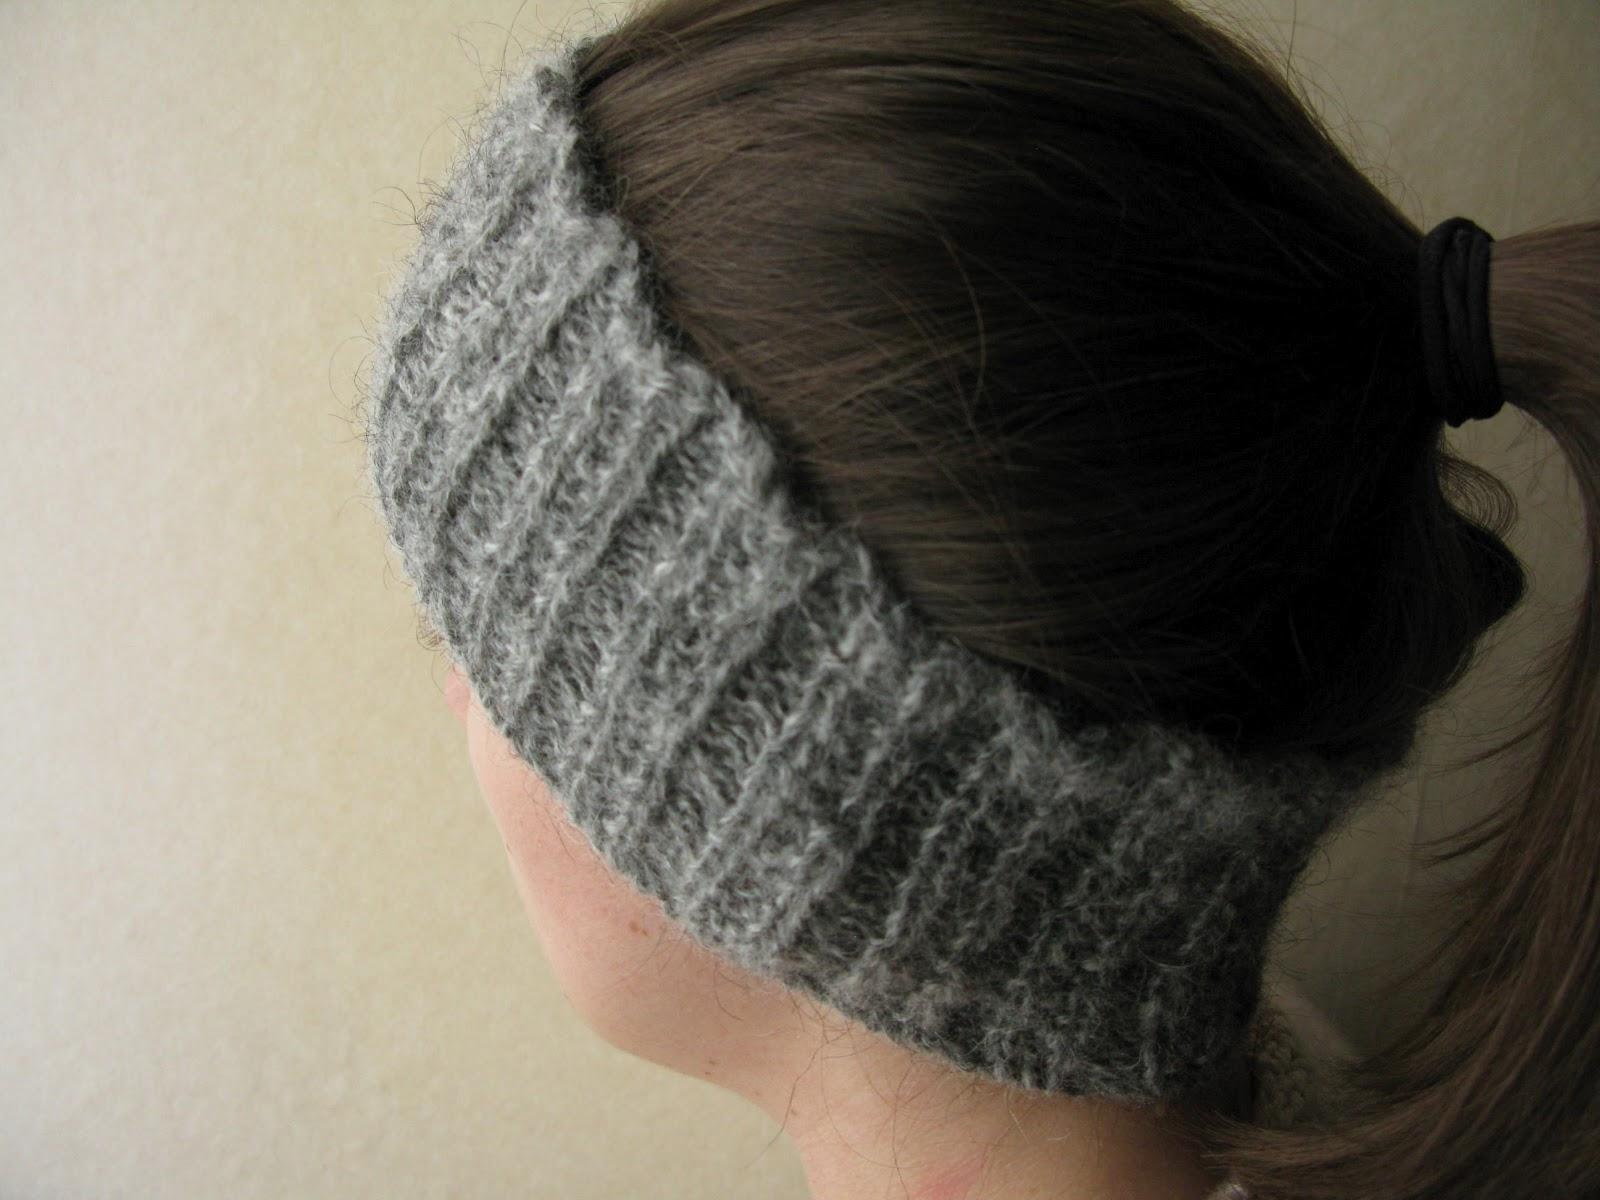 littletheorem: Beaded Rib Headband